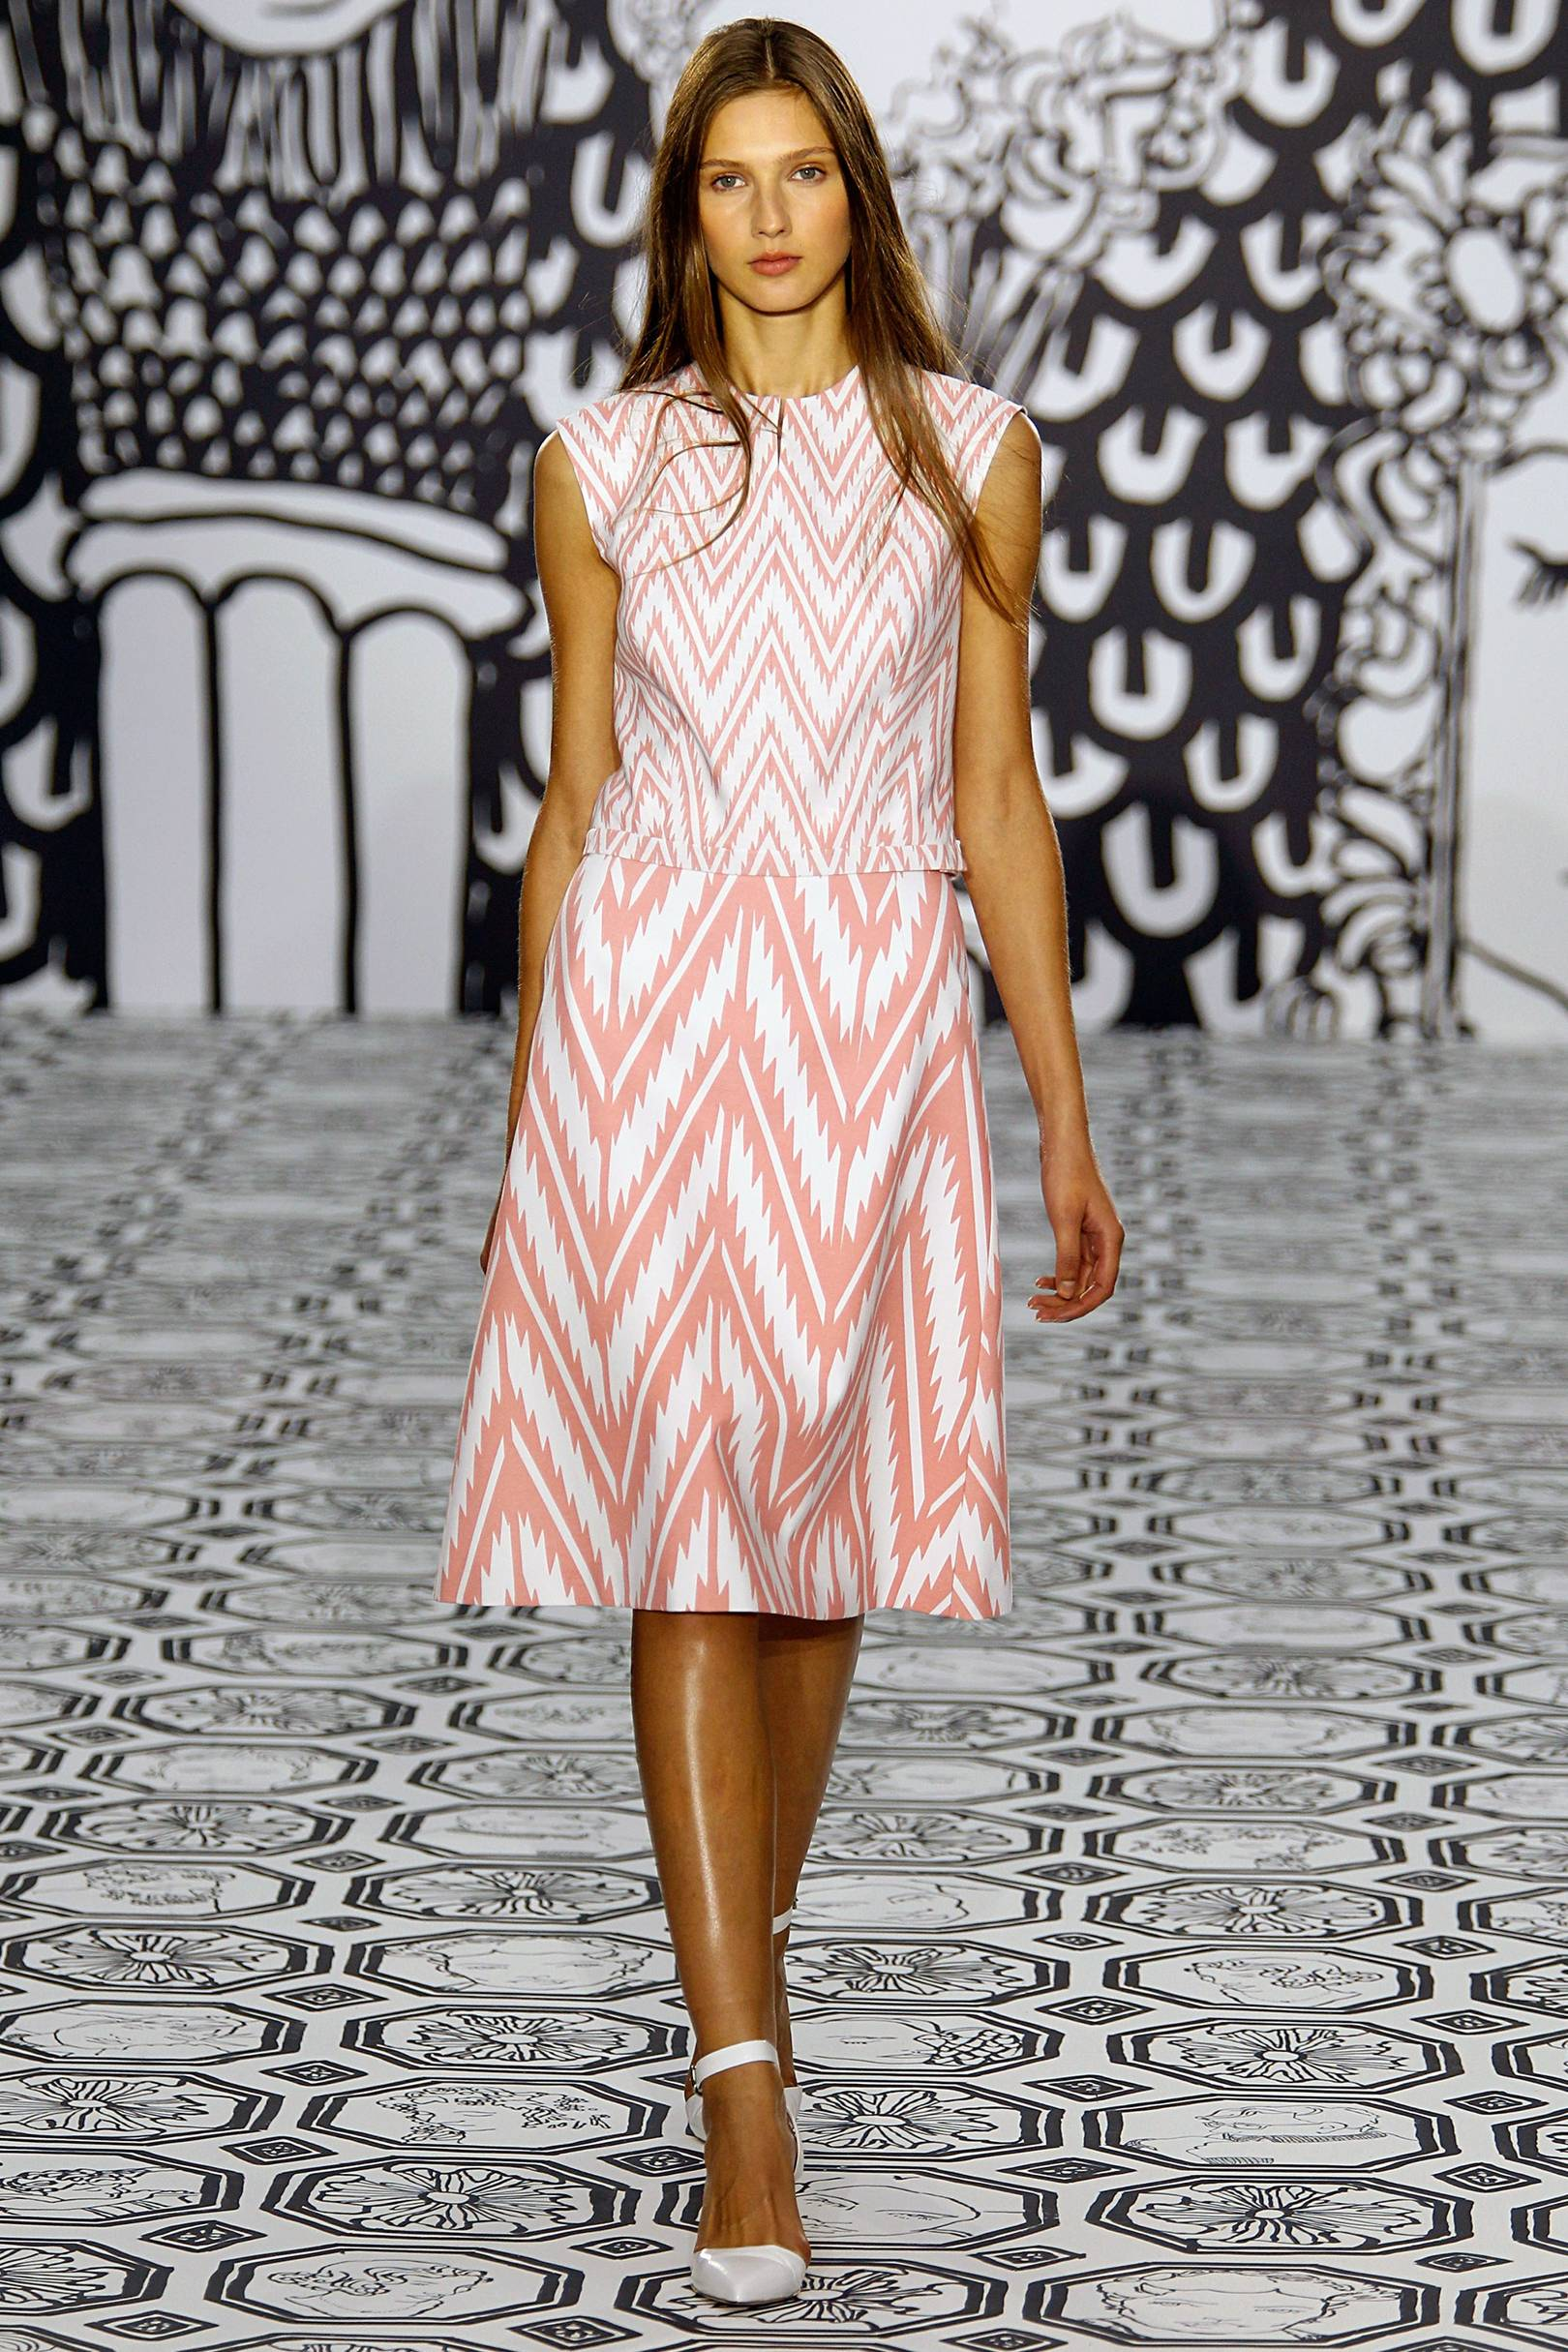 photo Donna air fashion scout one to watch show in london